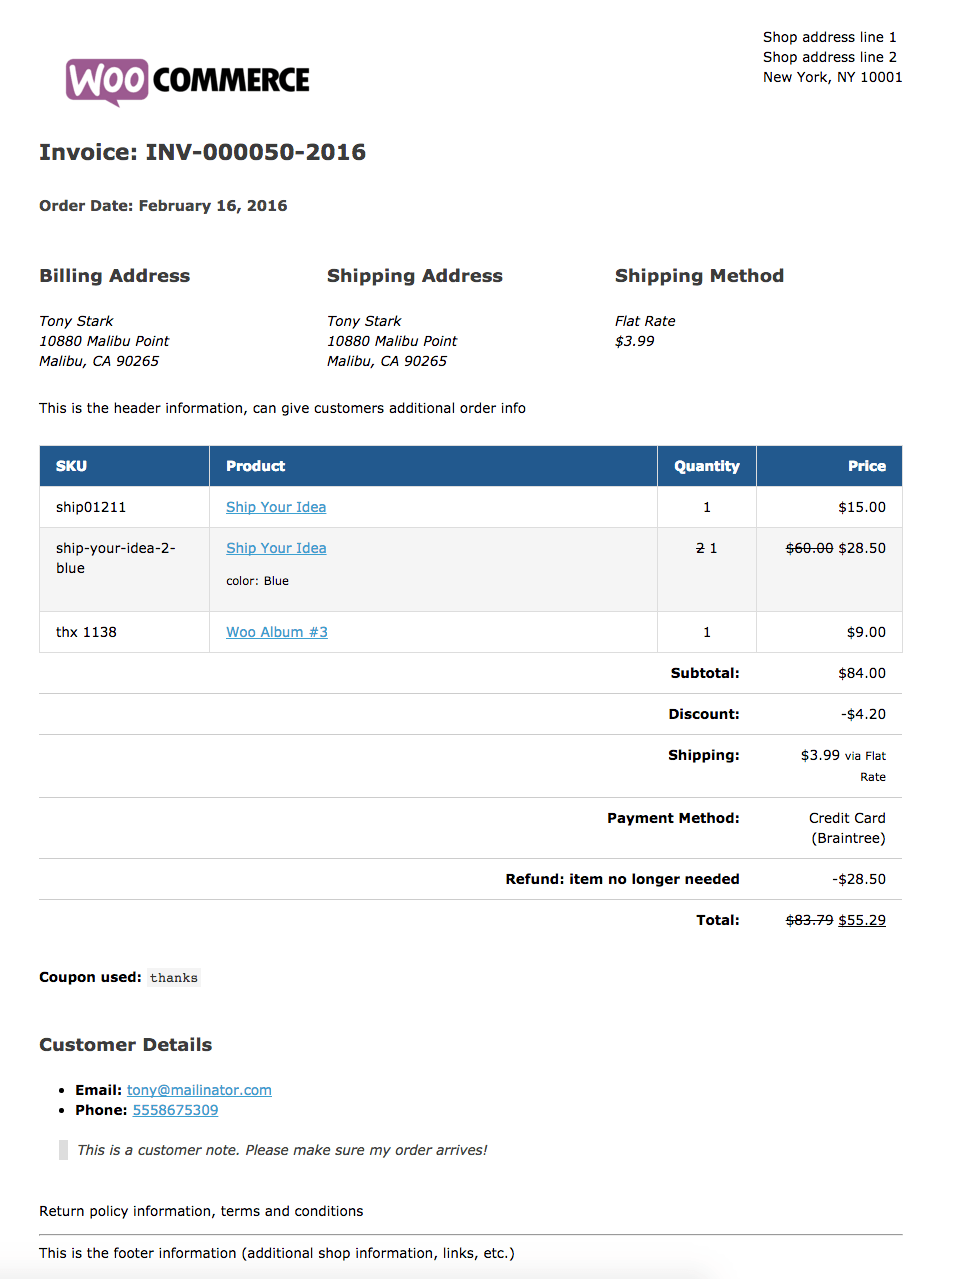 Breakupus  Winning Woocommerce Print Invoices Amp Packing Lists  Woocommerce Docs With Great Sample Invoice With Extraordinary Format Of Cash Receipt Also What Is Payment Receipt In Addition Mac Receipt And Confirming The Receipt Of An Email As Well As Receipts Scanner Reviews Additionally Cash Receipts Form From Docswoocommercecom With Breakupus  Great Woocommerce Print Invoices Amp Packing Lists  Woocommerce Docs With Extraordinary Sample Invoice And Winning Format Of Cash Receipt Also What Is Payment Receipt In Addition Mac Receipt From Docswoocommercecom